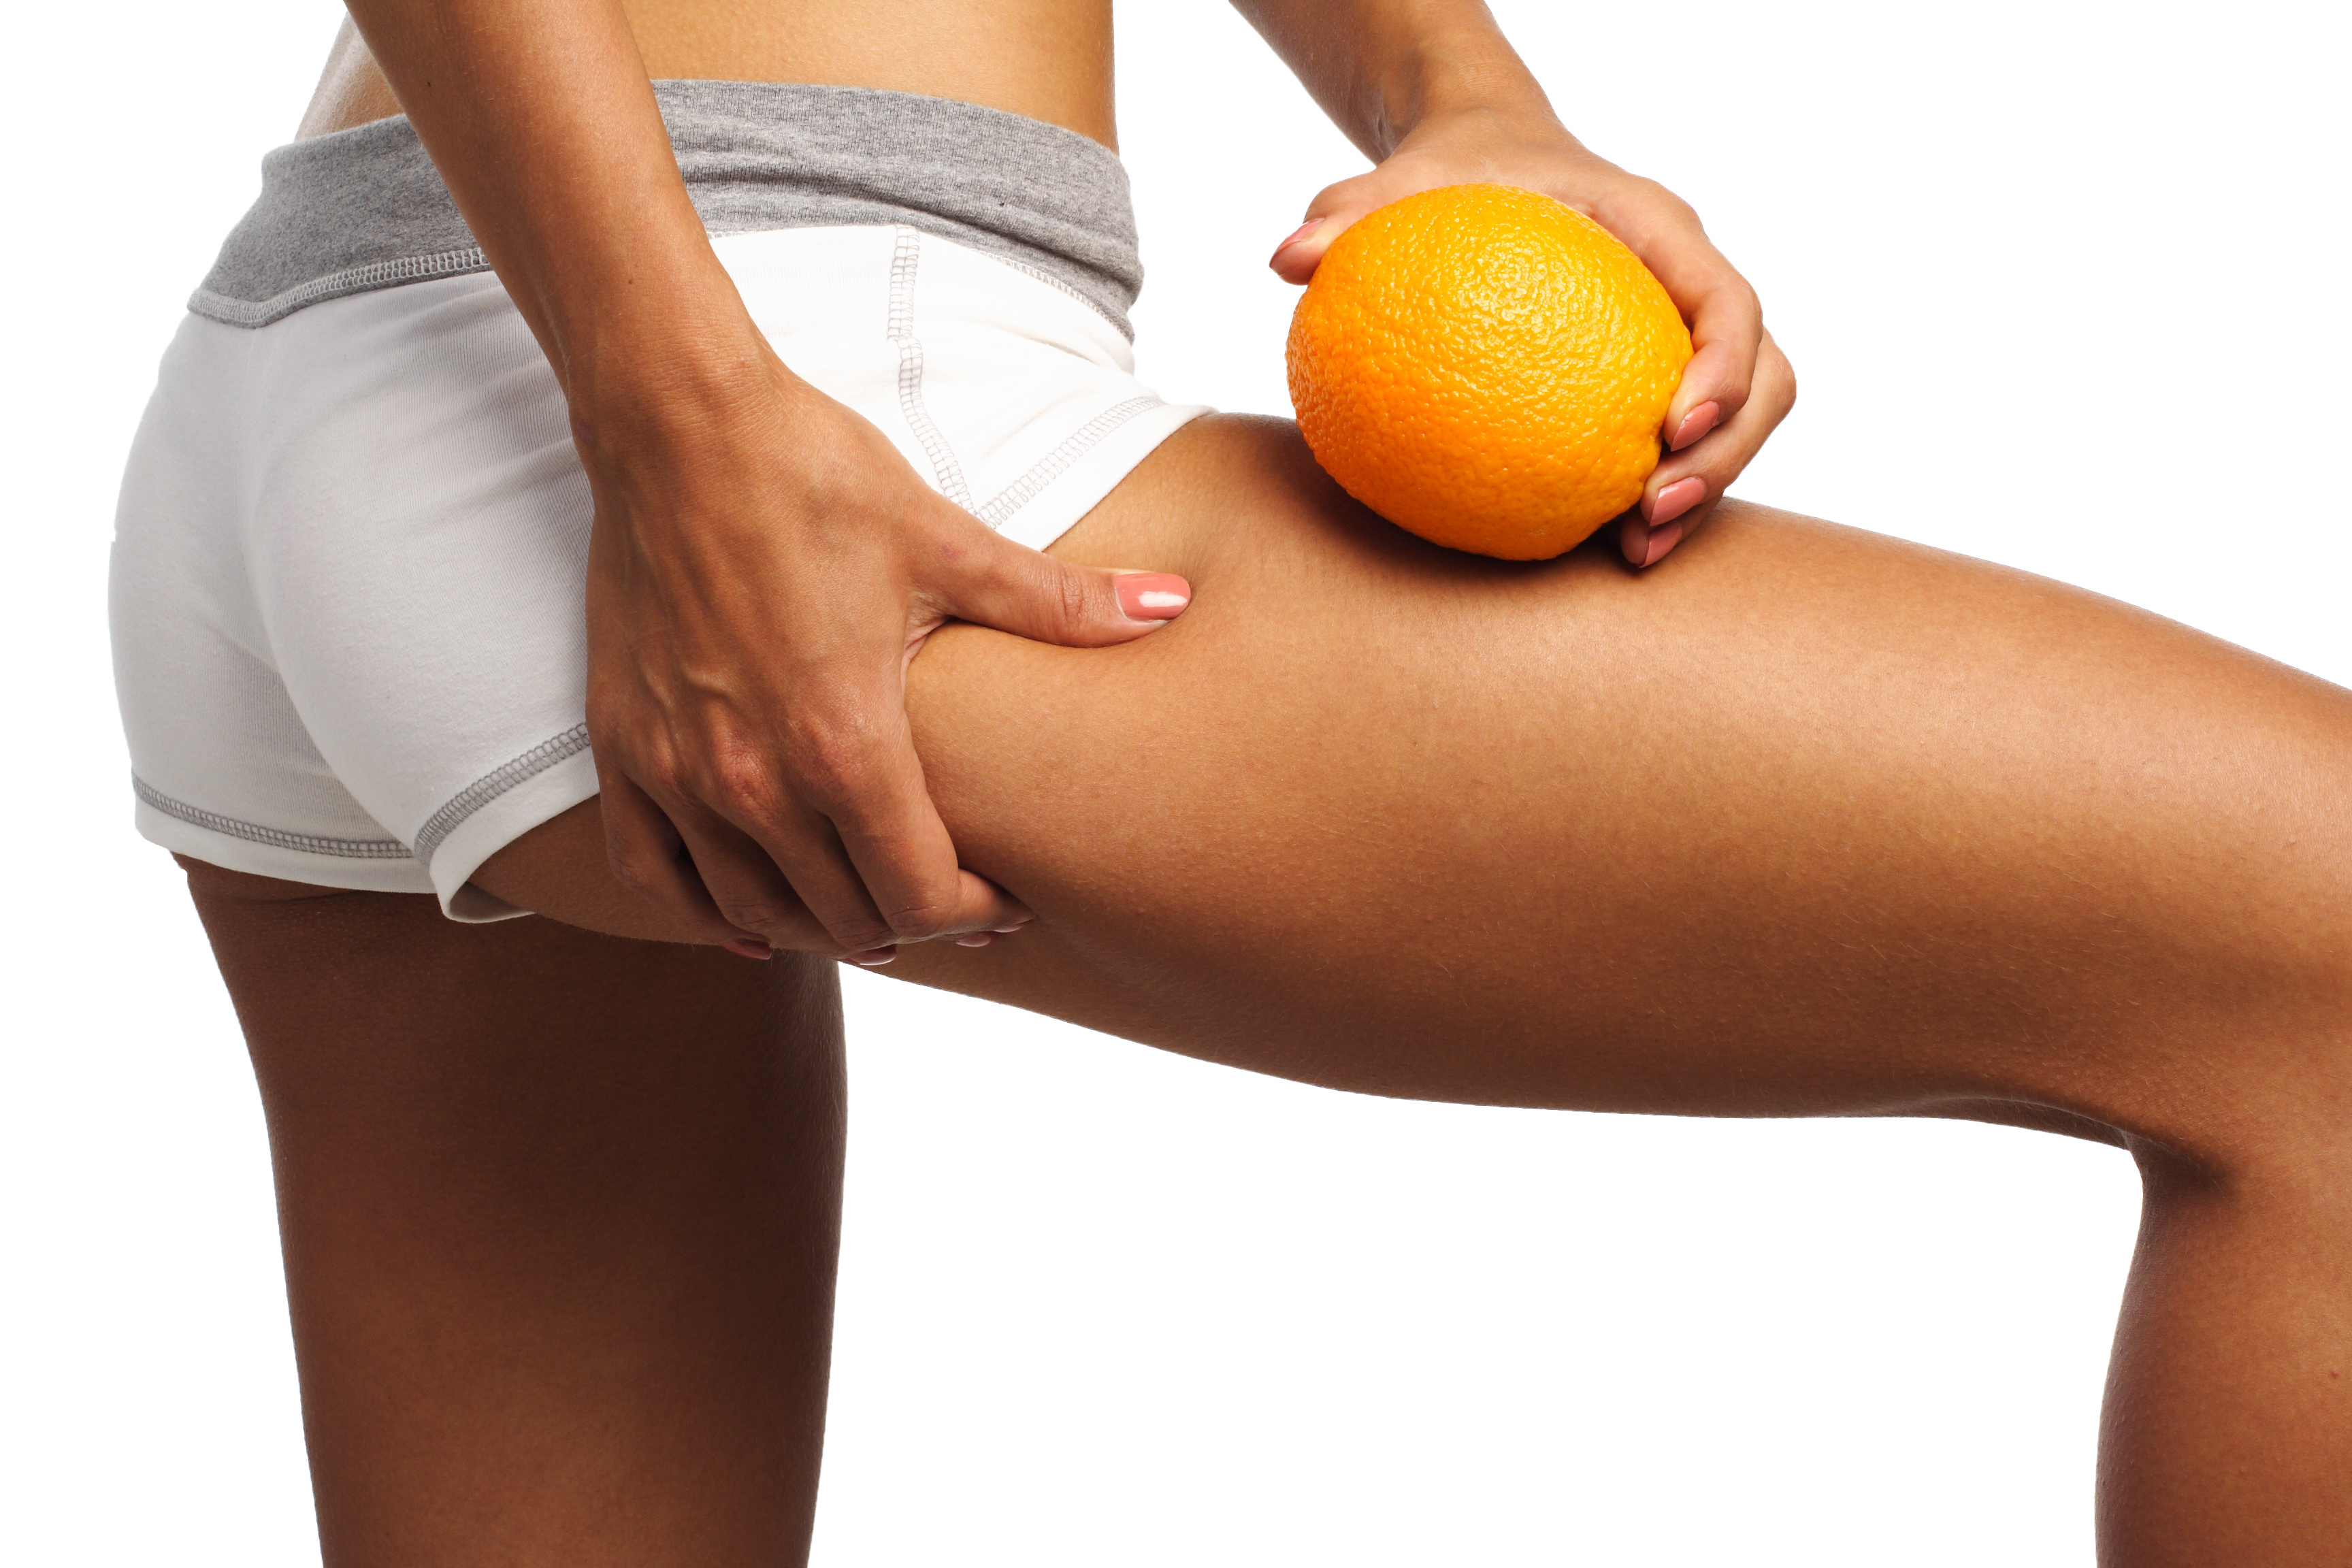 http://www.q8rashaqa.com/en/wp-content/uploads/2013/03/What-causes-cellulite.jpg